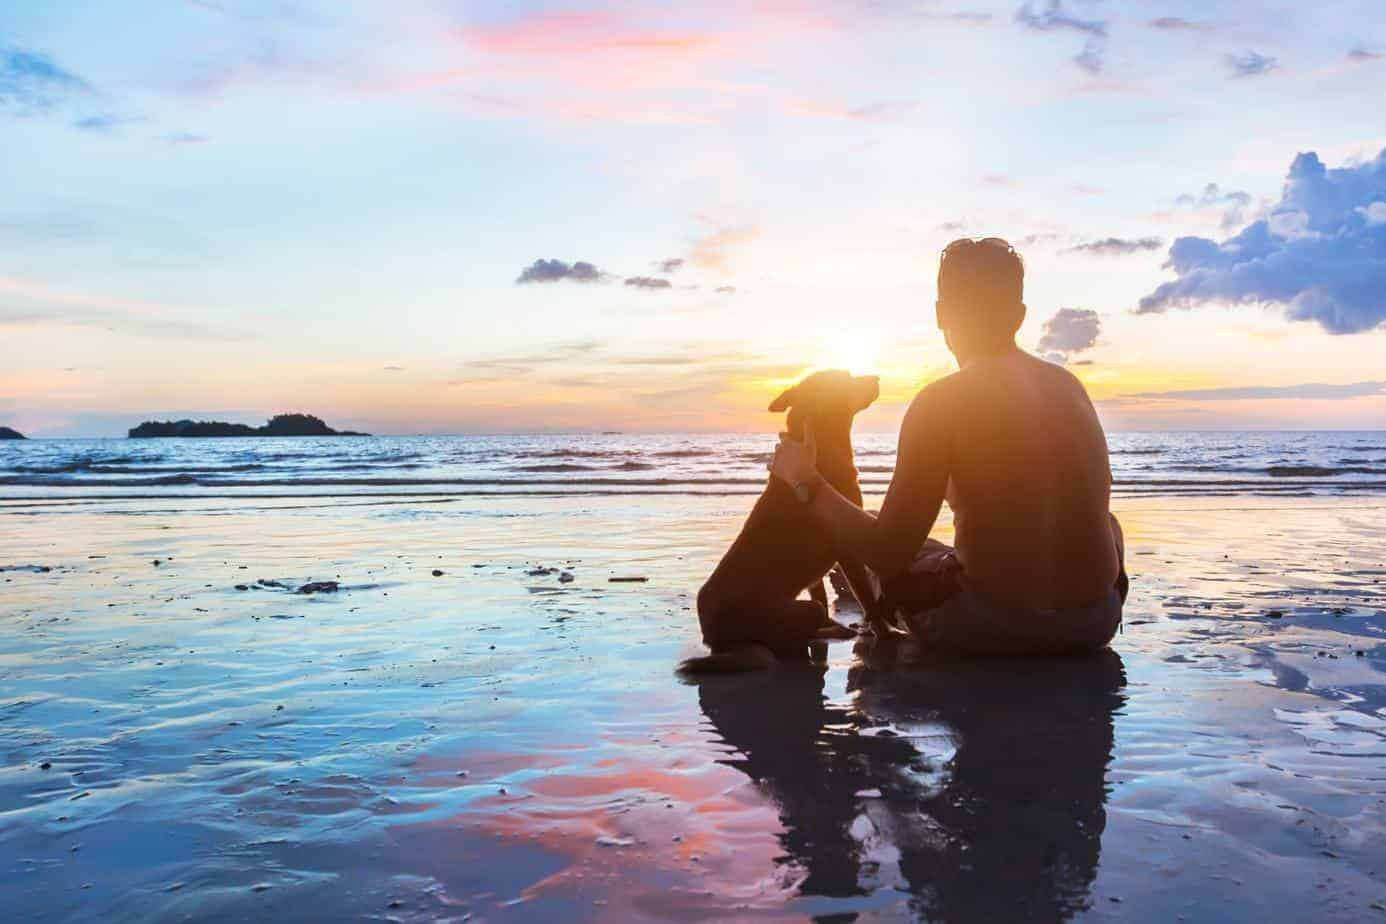 Dog and man watch sunset on beach. Dogs help people with mental illness by reducing the health risks of loneliness.